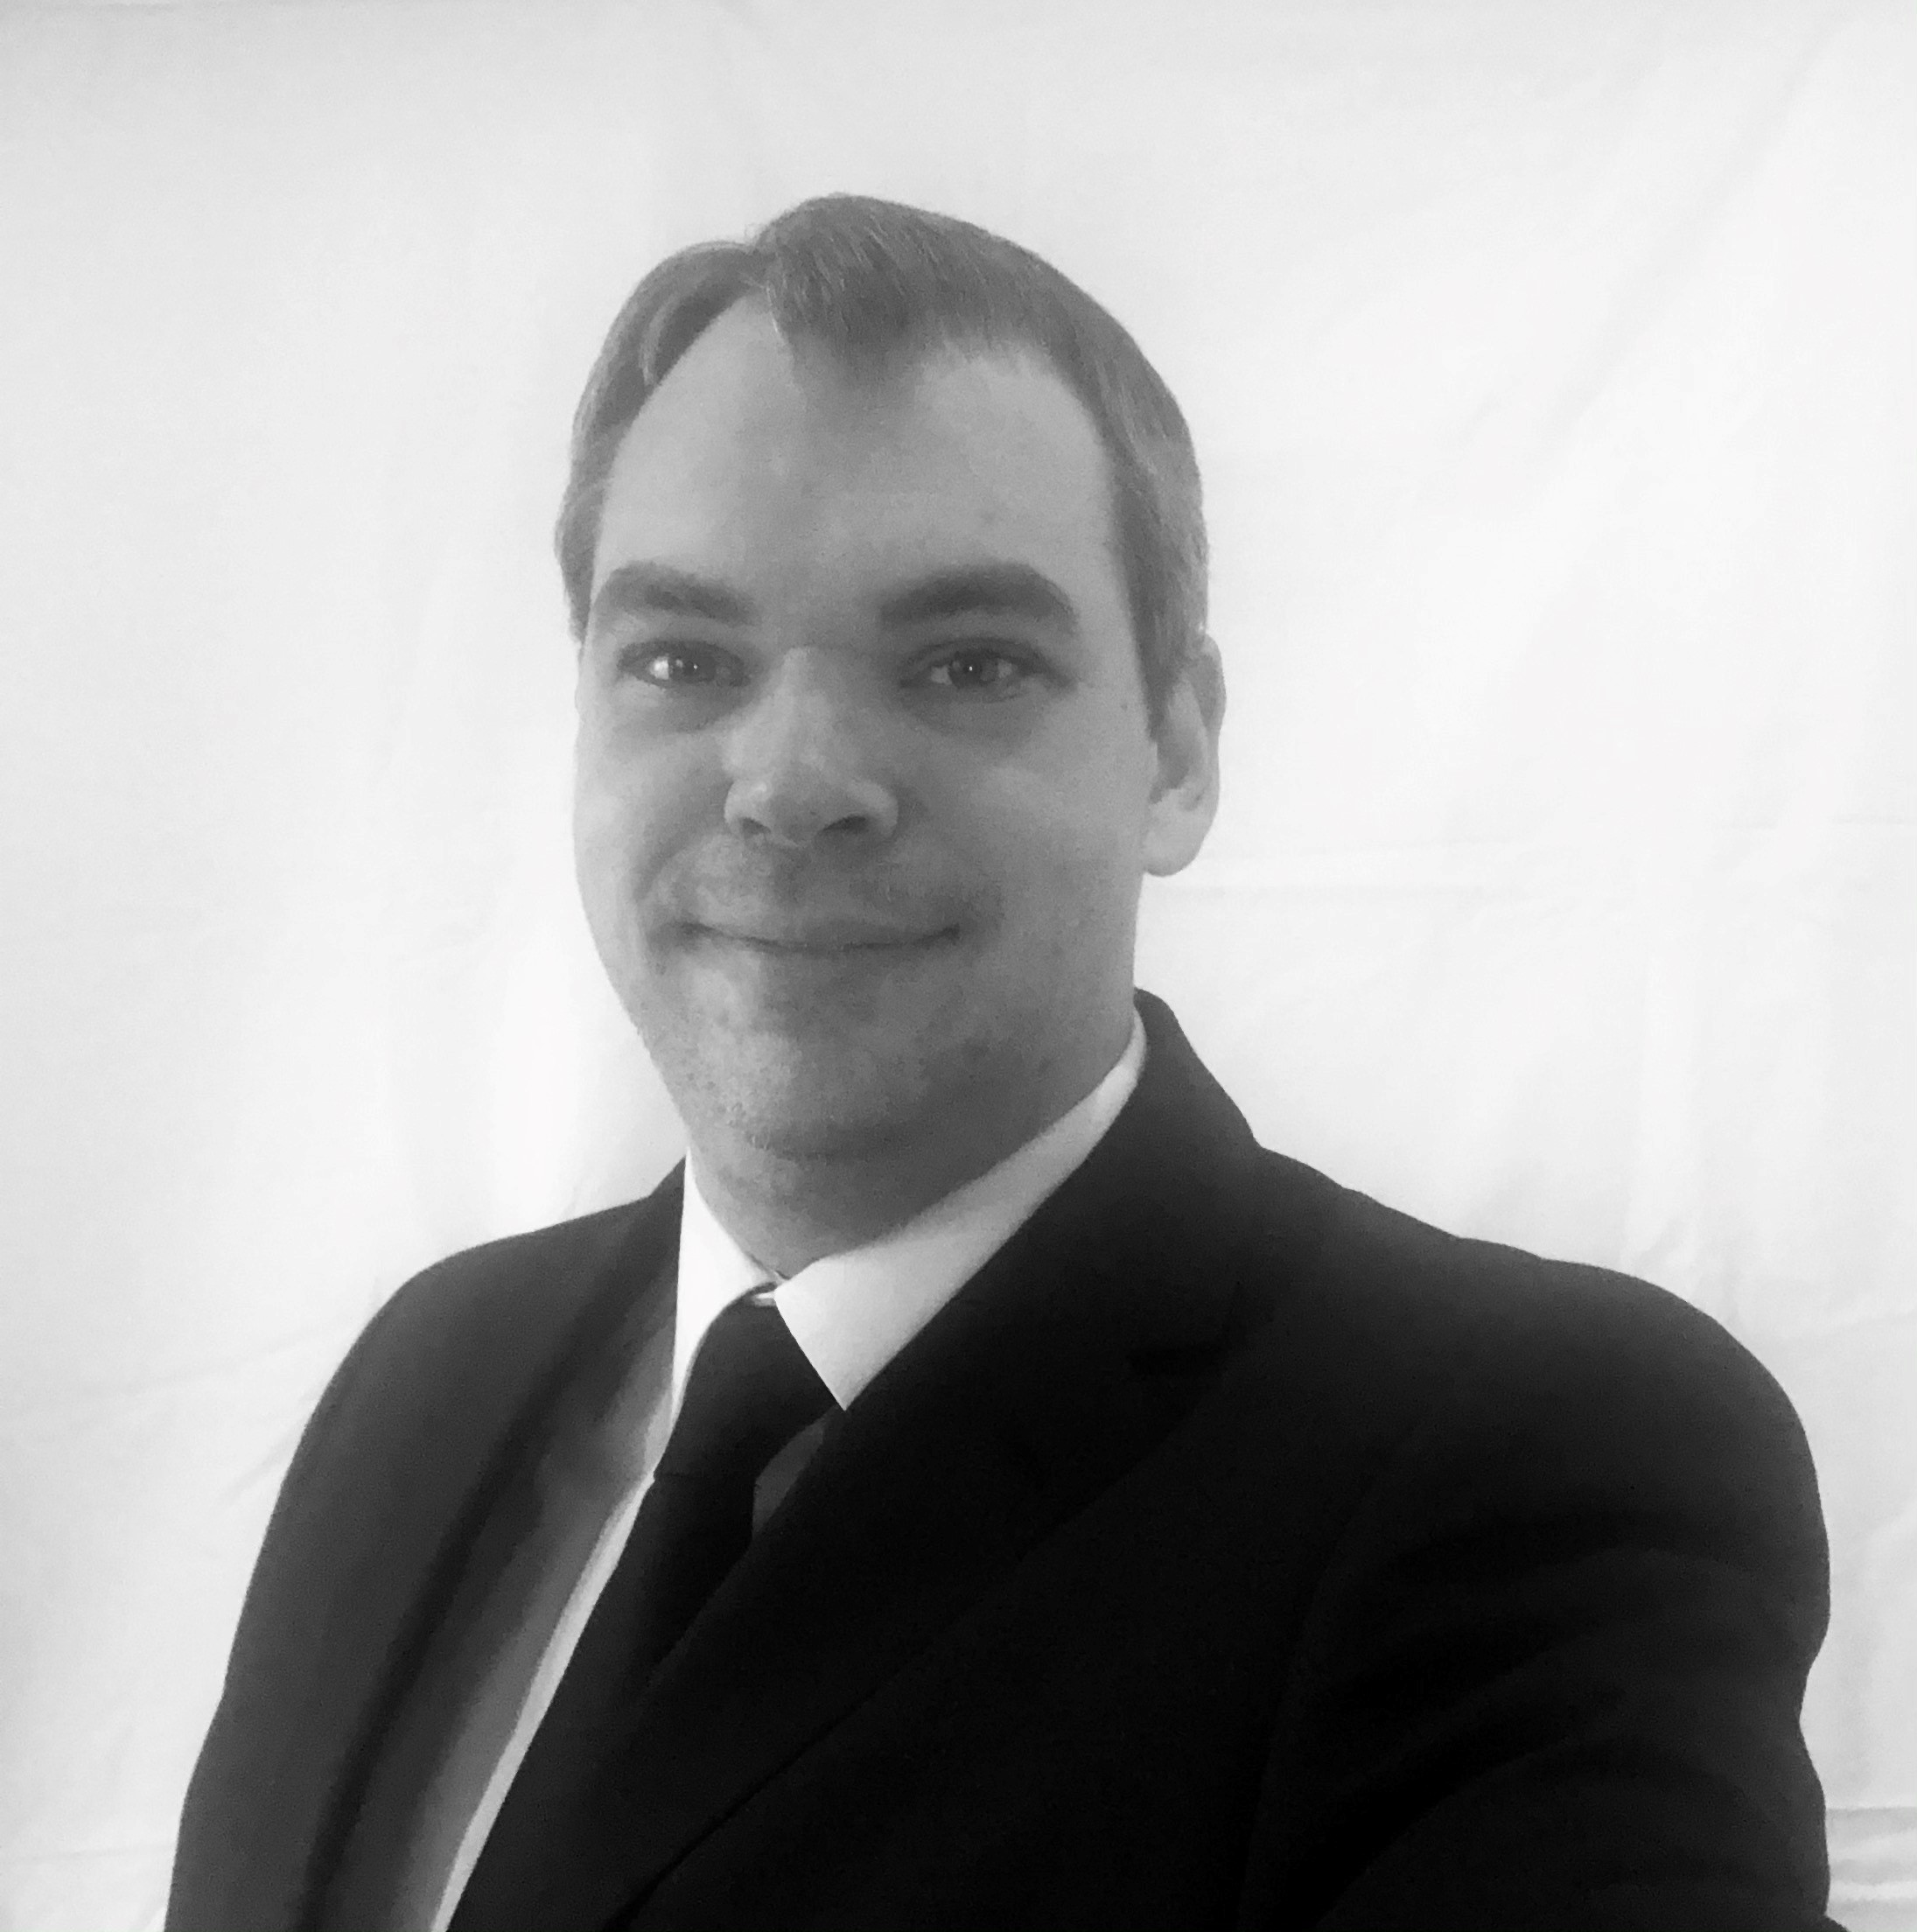 A new Business Development Manager for London based  Property Management firm Crabtree